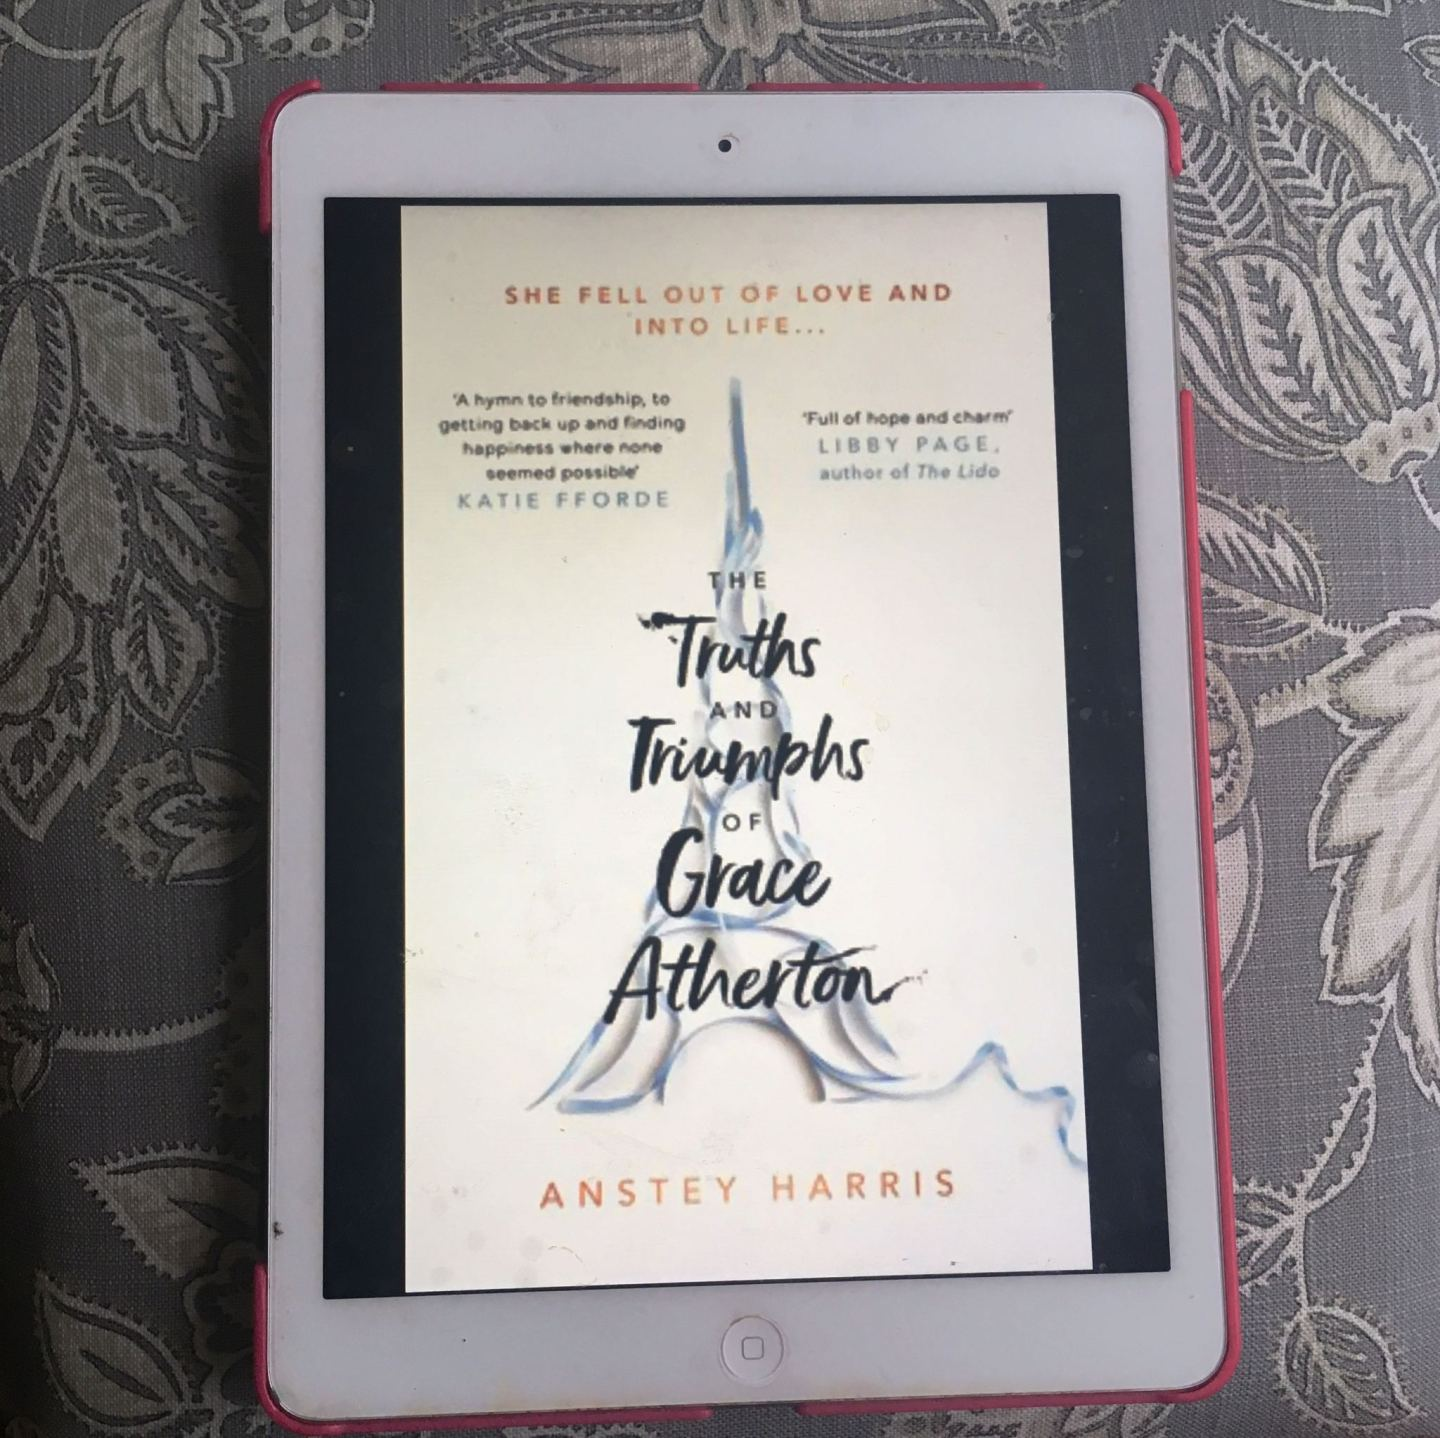 The cover of The Truths and Triumphs of Grace Atherton